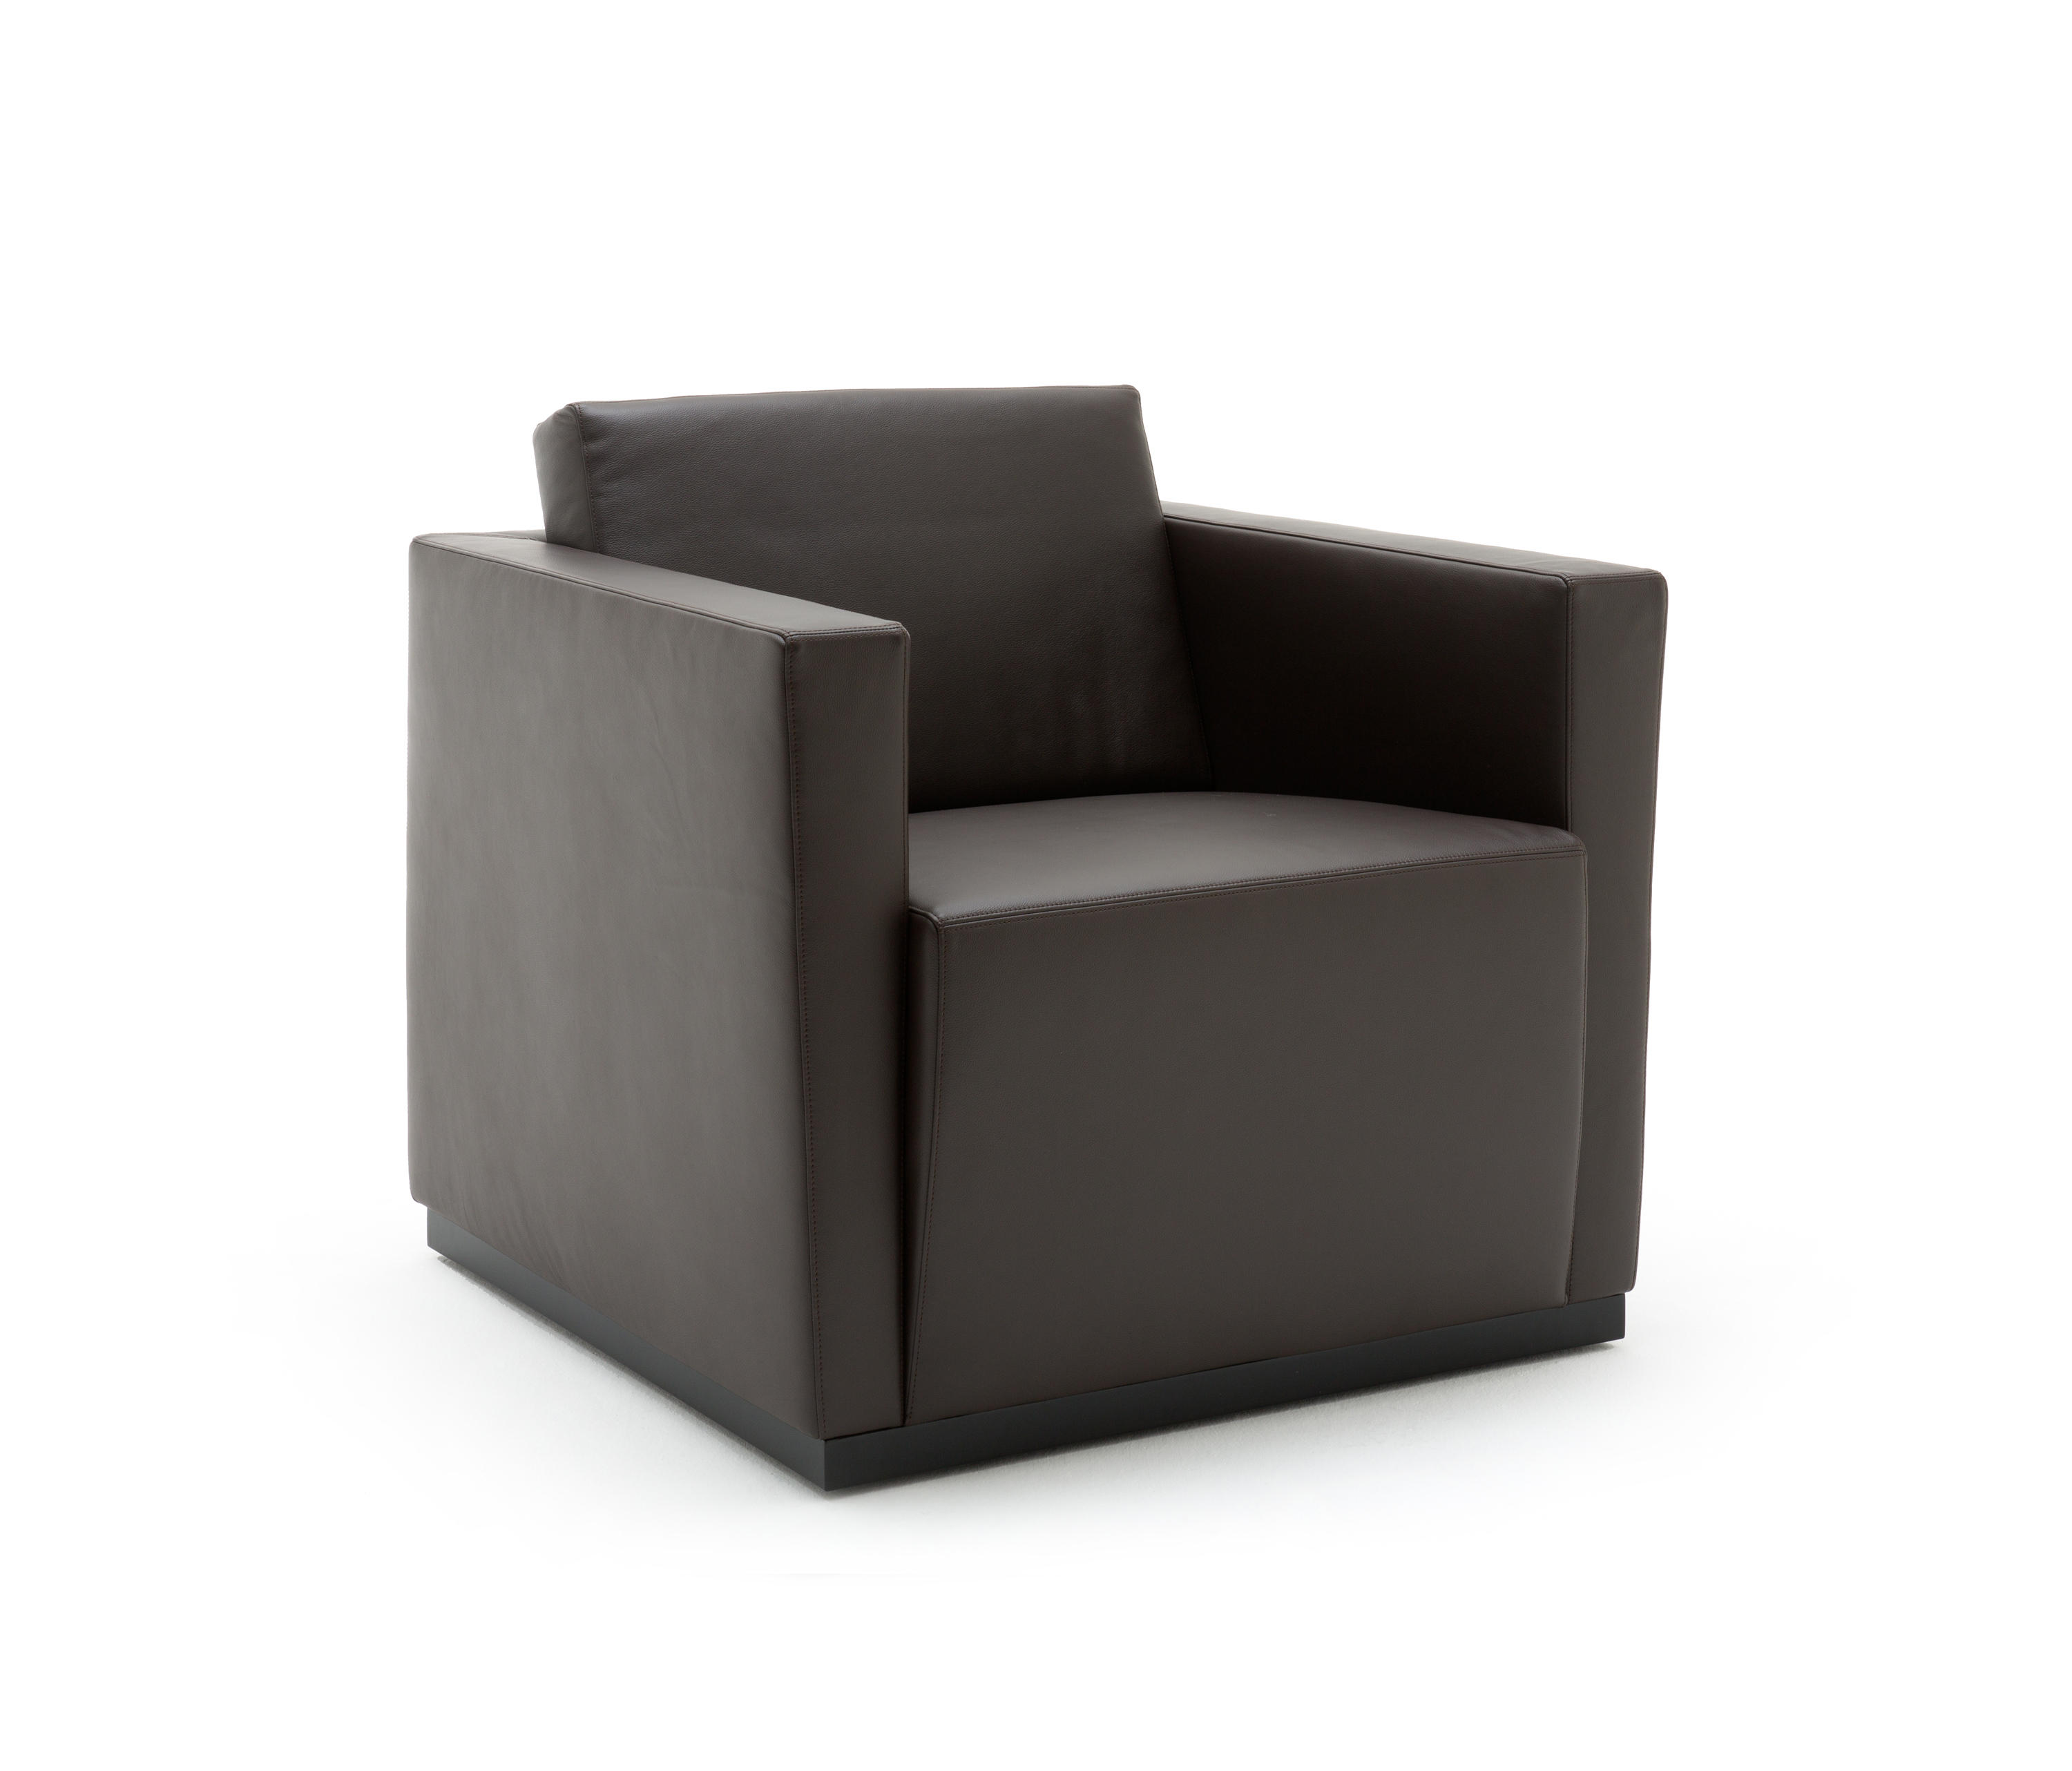 Elton Armchair By Walter K. | Armchairs ...